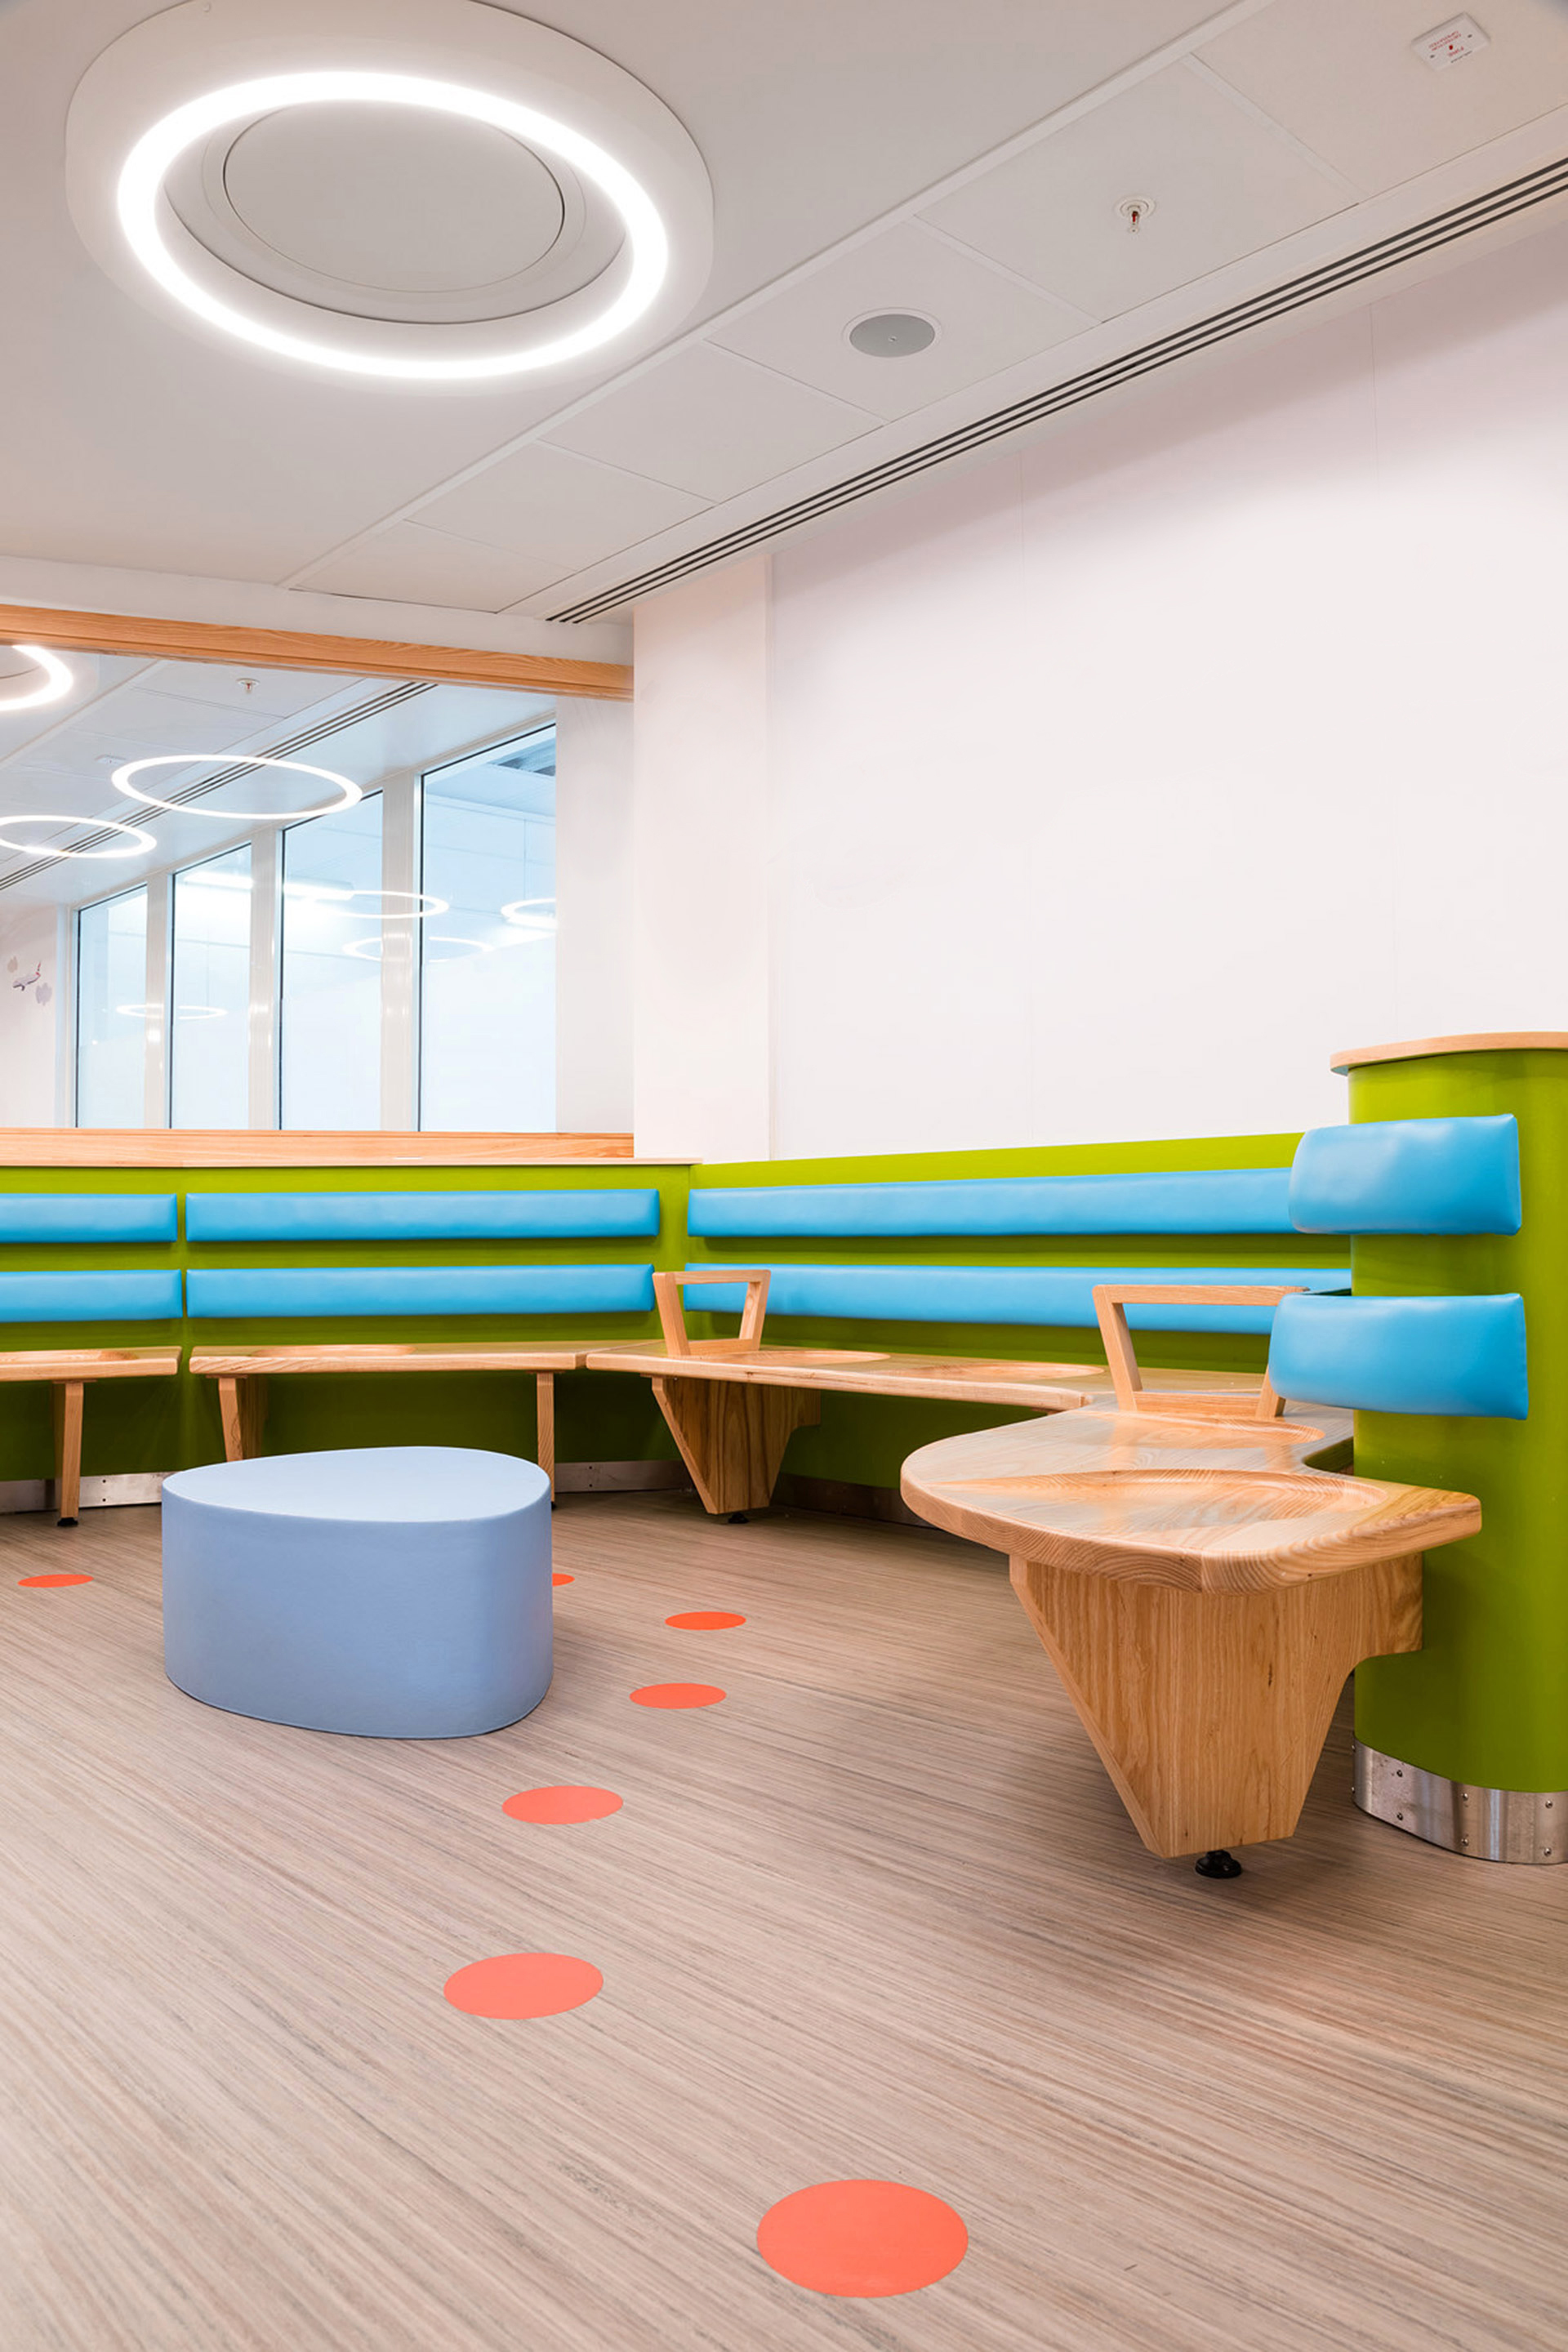 Colourful dot floor graphics provide a welcome distraction for patients waiting at Chelsea and Westminster Hospital